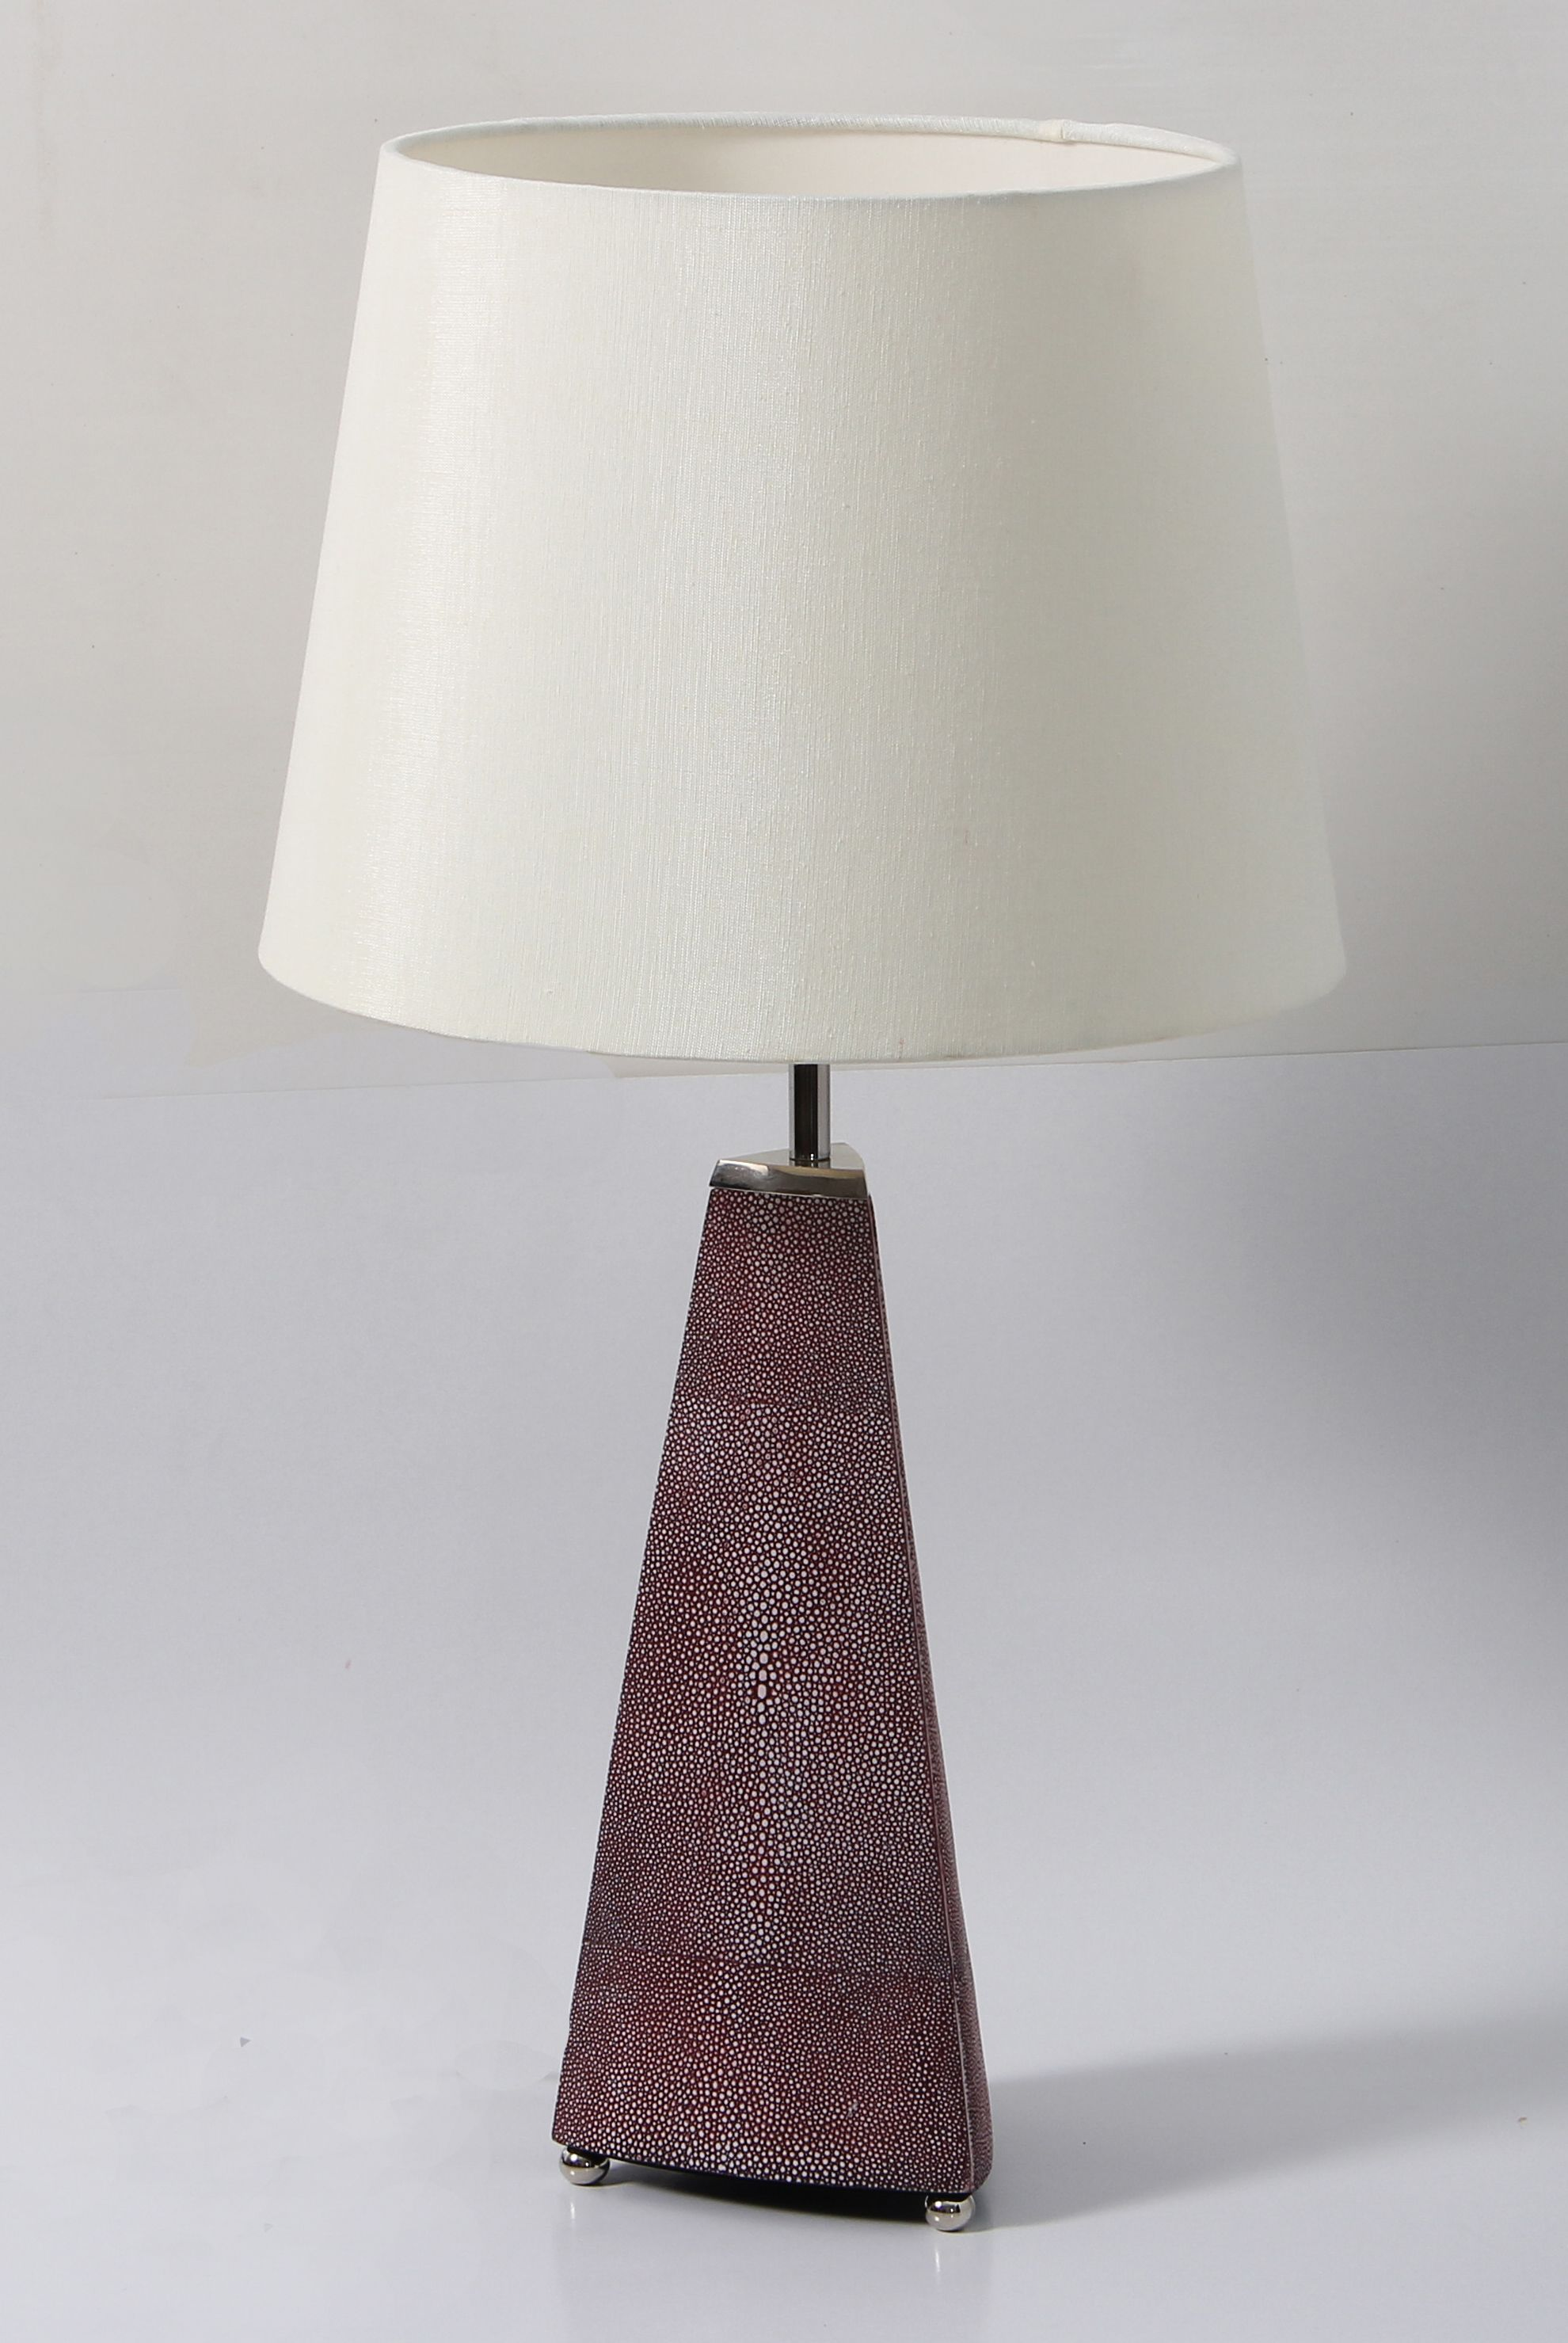 A simple but elegant table lamp bedside lamp made with stainless a simple but elegant table lamp bedside lamp made with stainless steel and faux mulberry geotapseo Choice Image